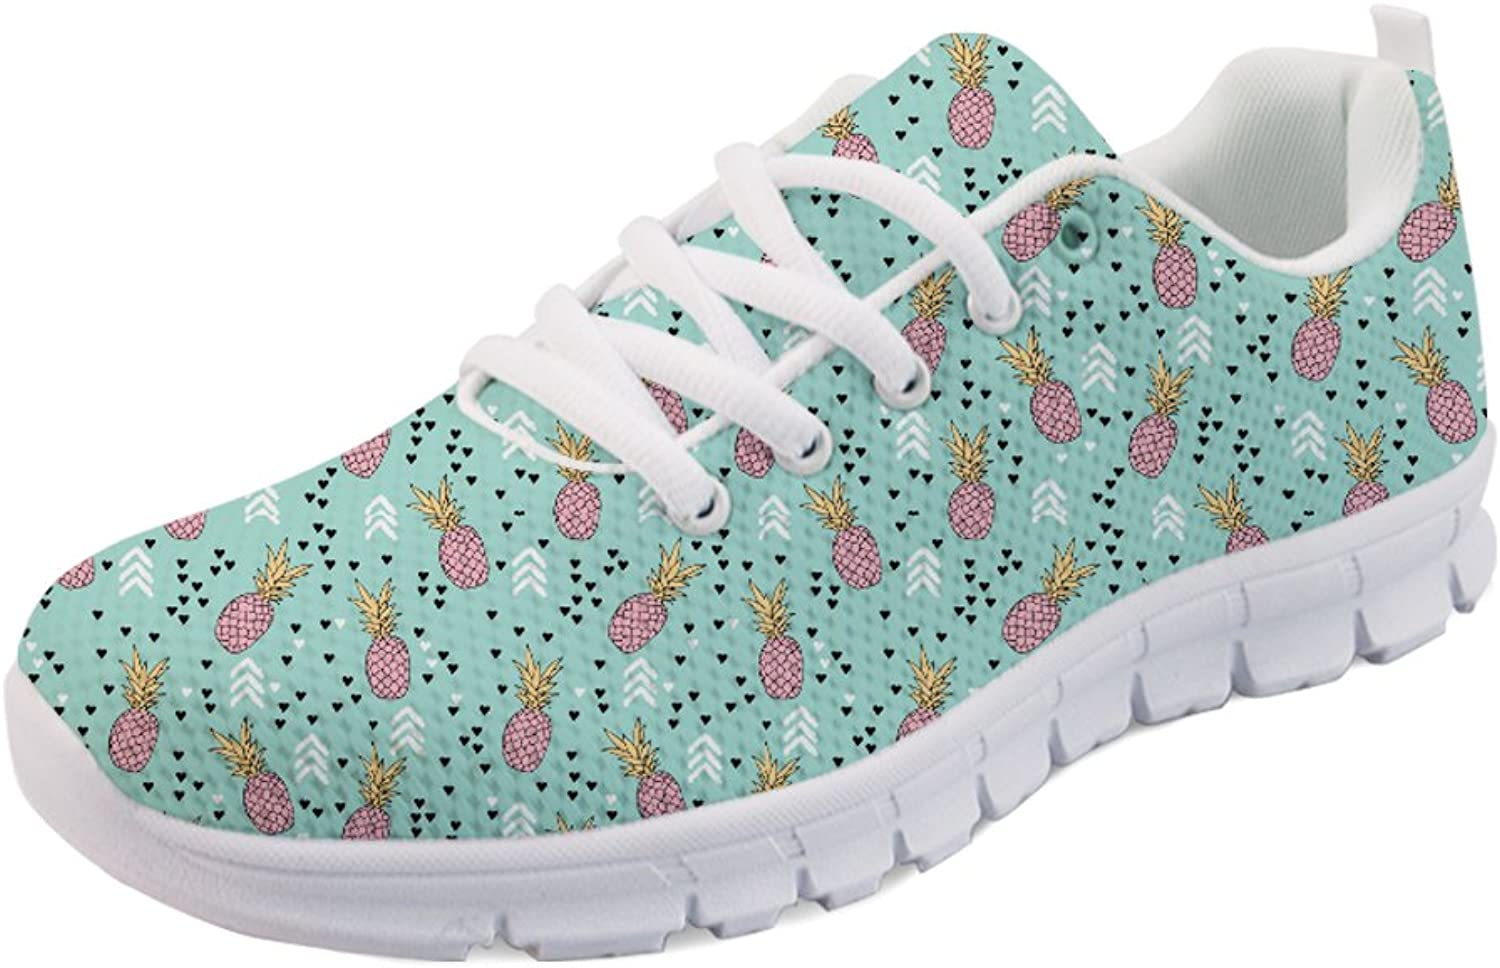 INSTANTARTS Pineapple Print Women's Athletic Sneaker Running Sport shoes Lace up